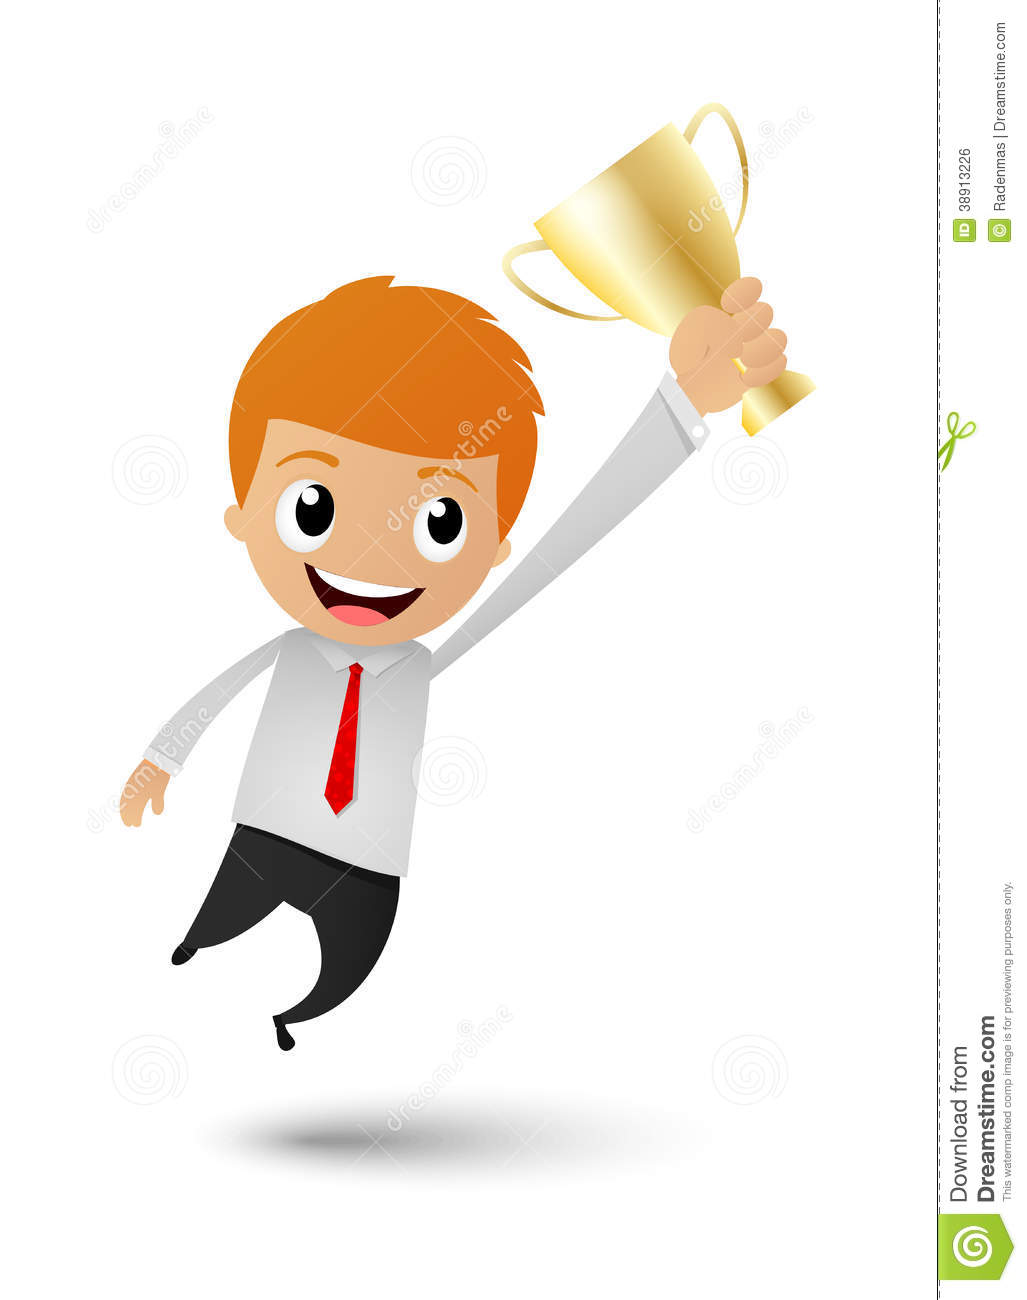 businessman victory cartoon stock vector image 38913226 boxing clip art images boxing clipart free creative commons license